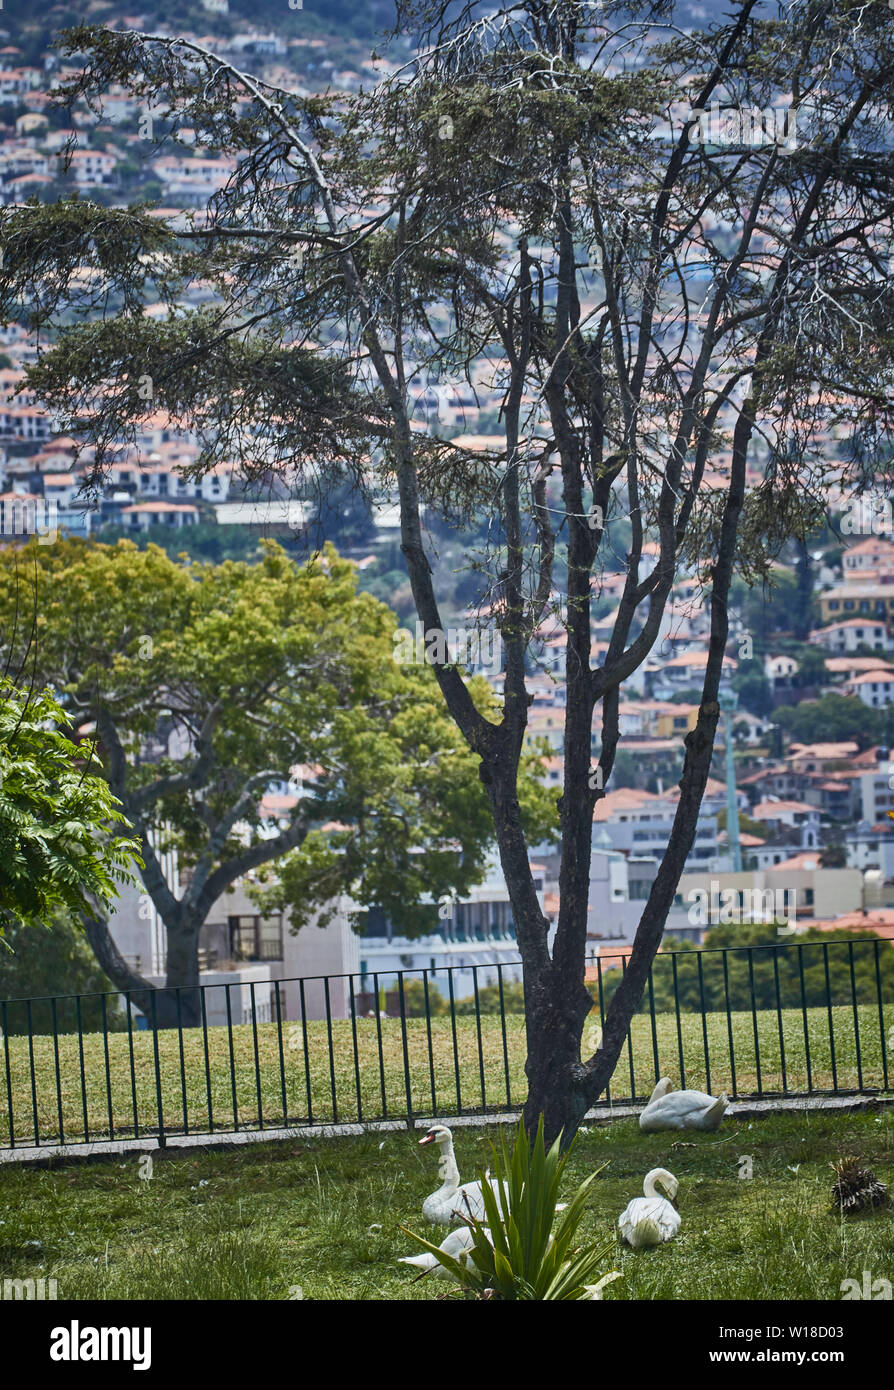 Sapling and swans in Santa Catarina Park with white houses in the background, Funchal, Madeira, Portugal, European Union - Stock Image